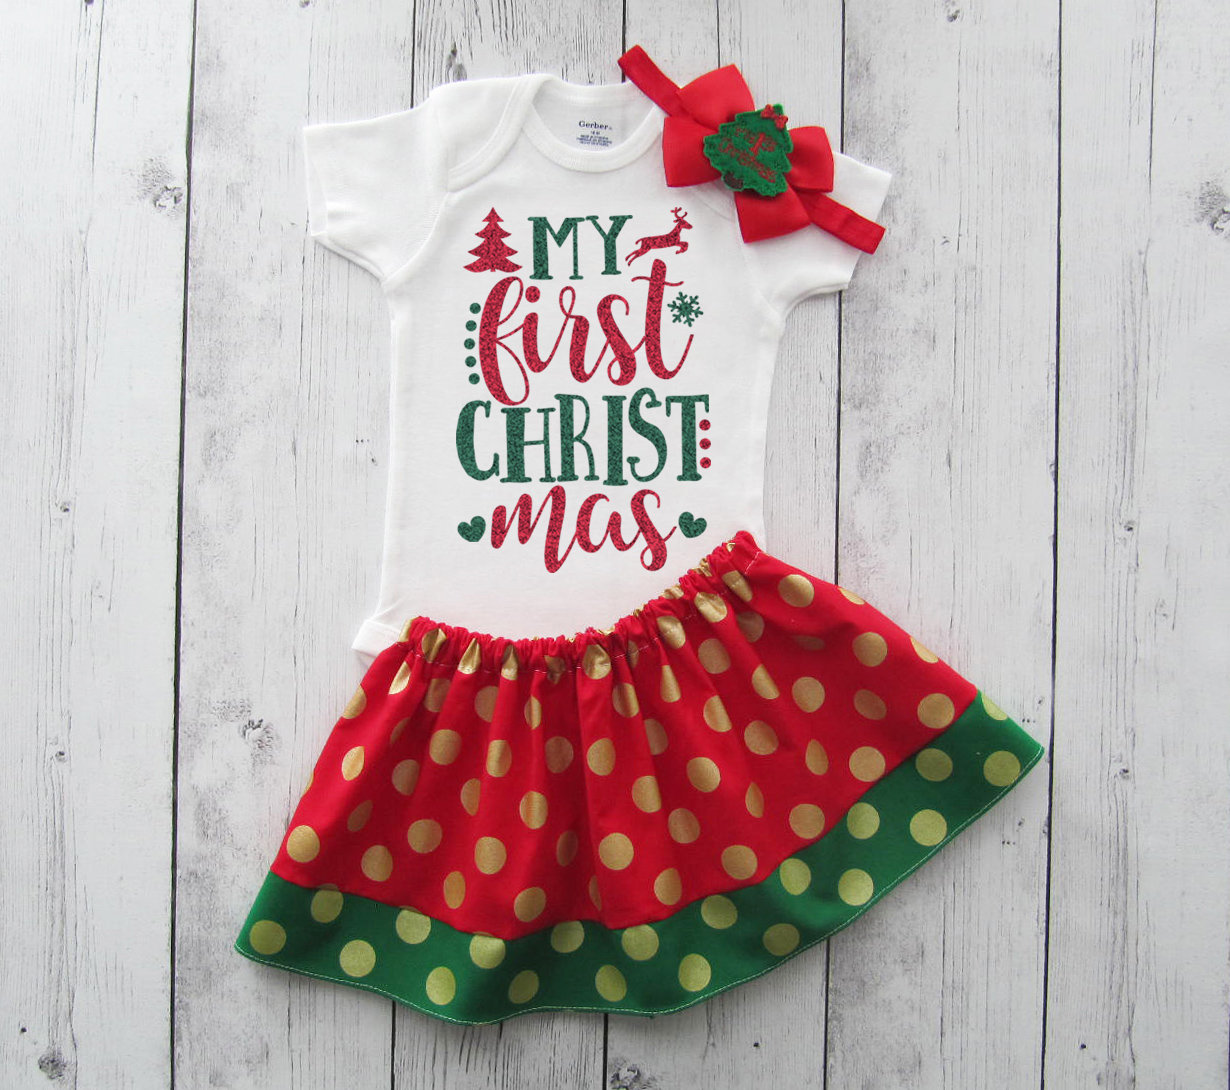 My First Christmas Outfit for Baby Girl in red and green glitter - first christmas shirt, holiday outfit, babys 1st xmas, leg warmers